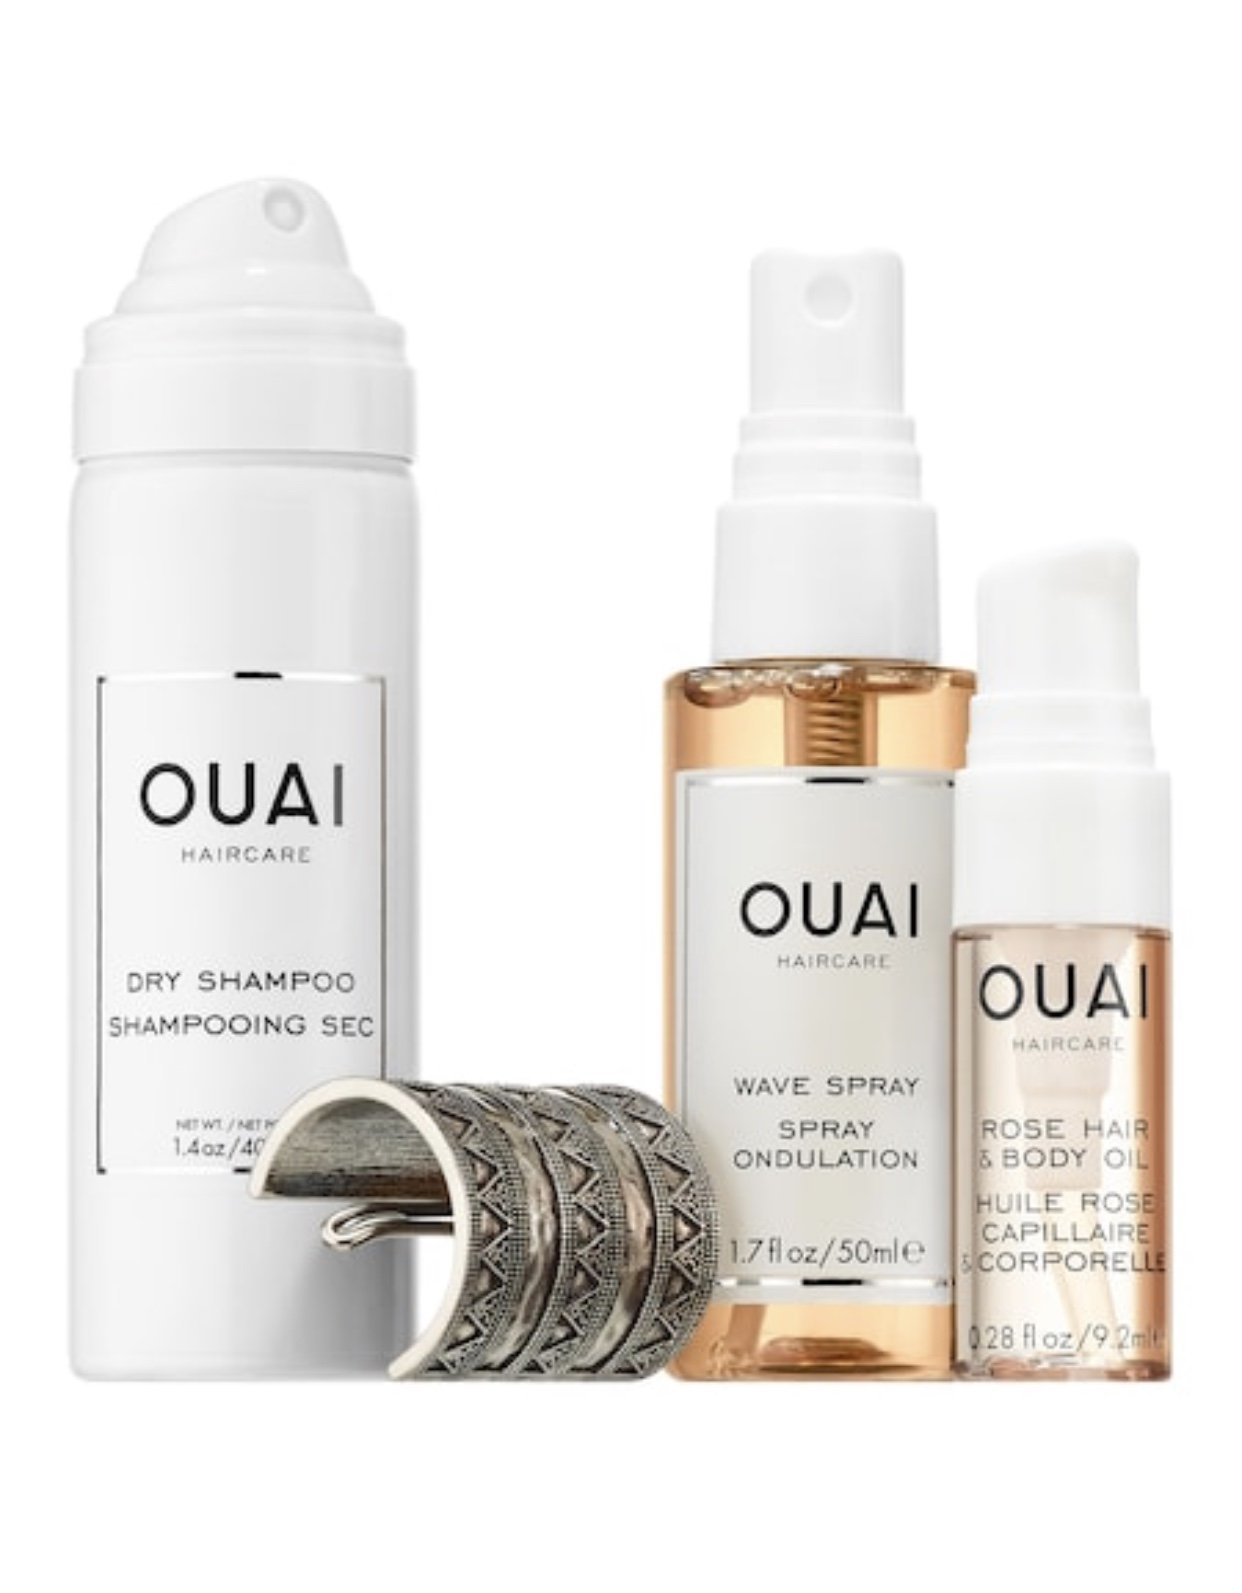 Ouai Desert OUAIsis Festival Kit: Rose Hair & Body Oil, Dry Shampoo Foam, Wave Spray, Jen Atkin x Chloe + Isabel Ponytail Piece (Limited Edition) by Ouai (Image #2)